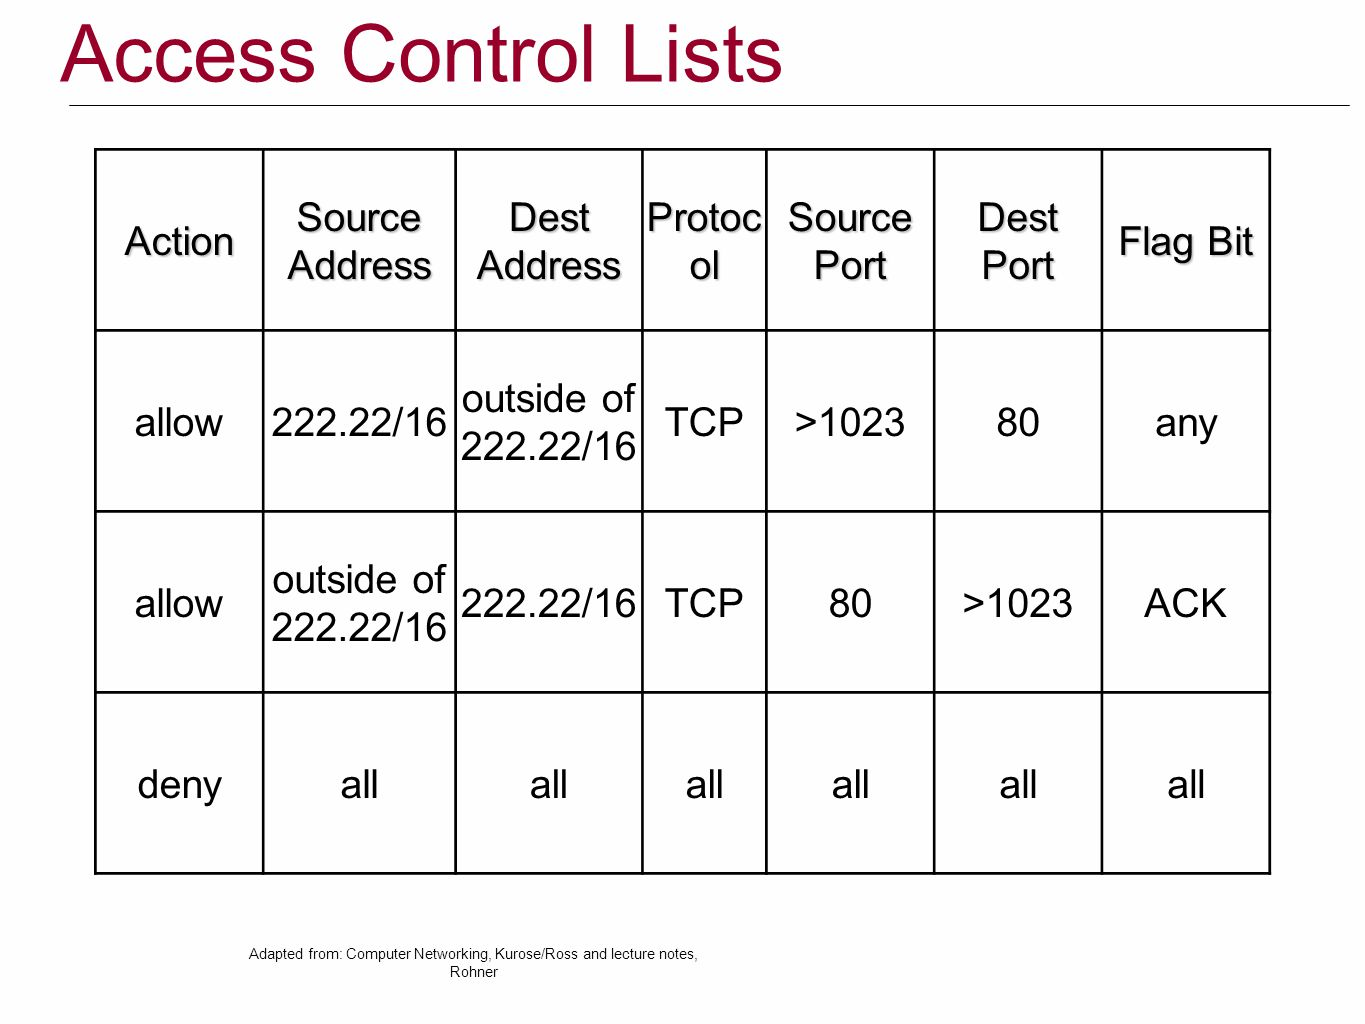 Access Control ListsActionSourceAddressDestAddress Protoc ol SourcePortDestPort Flag Bit allow222.22/16 outside of 222.22/16 TCP>102380any allow outside of 222.22/16 TCP80>1023ACK denyall Adapted from: Computer Networking, Kurose/Ross and lecture notes, Rohner